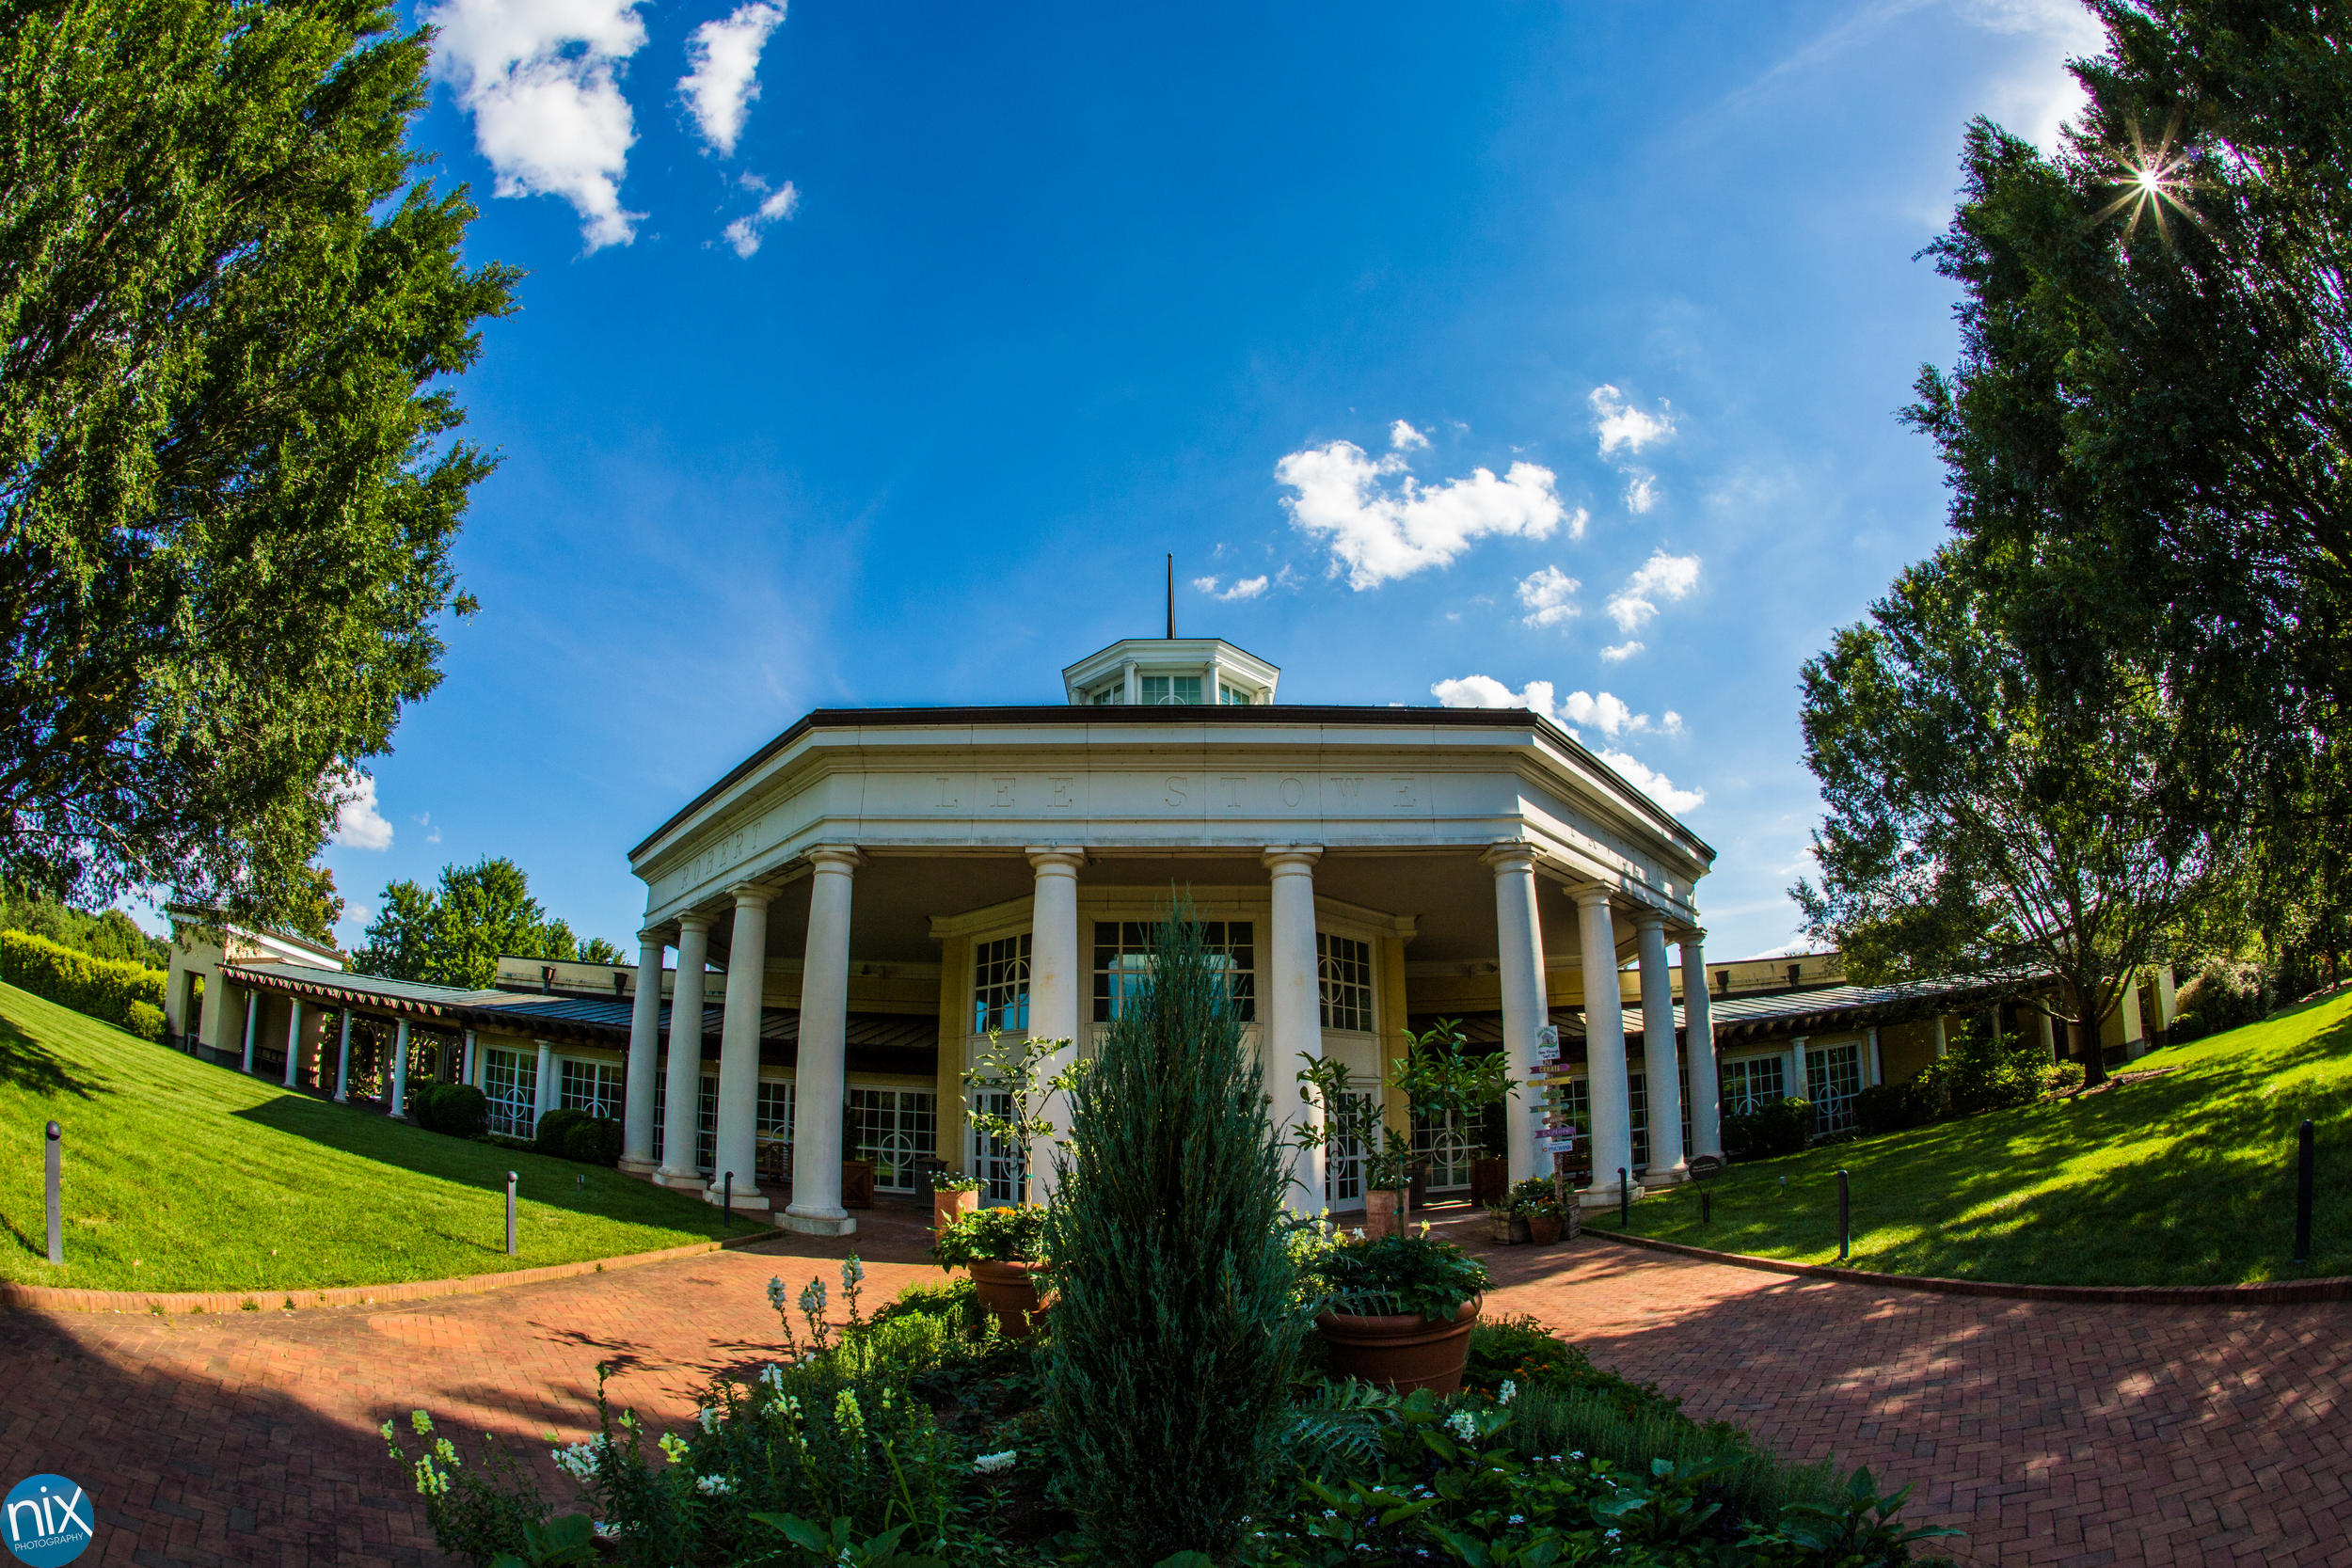 The best in Charlotte - Daniel Stowe Botanical Gardens is, in my opinion, one of the best spots for a wedding in the Charlotte region. The venue is packed with natural beauty from end to end and gives the wedding party and their guests plenty to enjoy through out the wedding day.